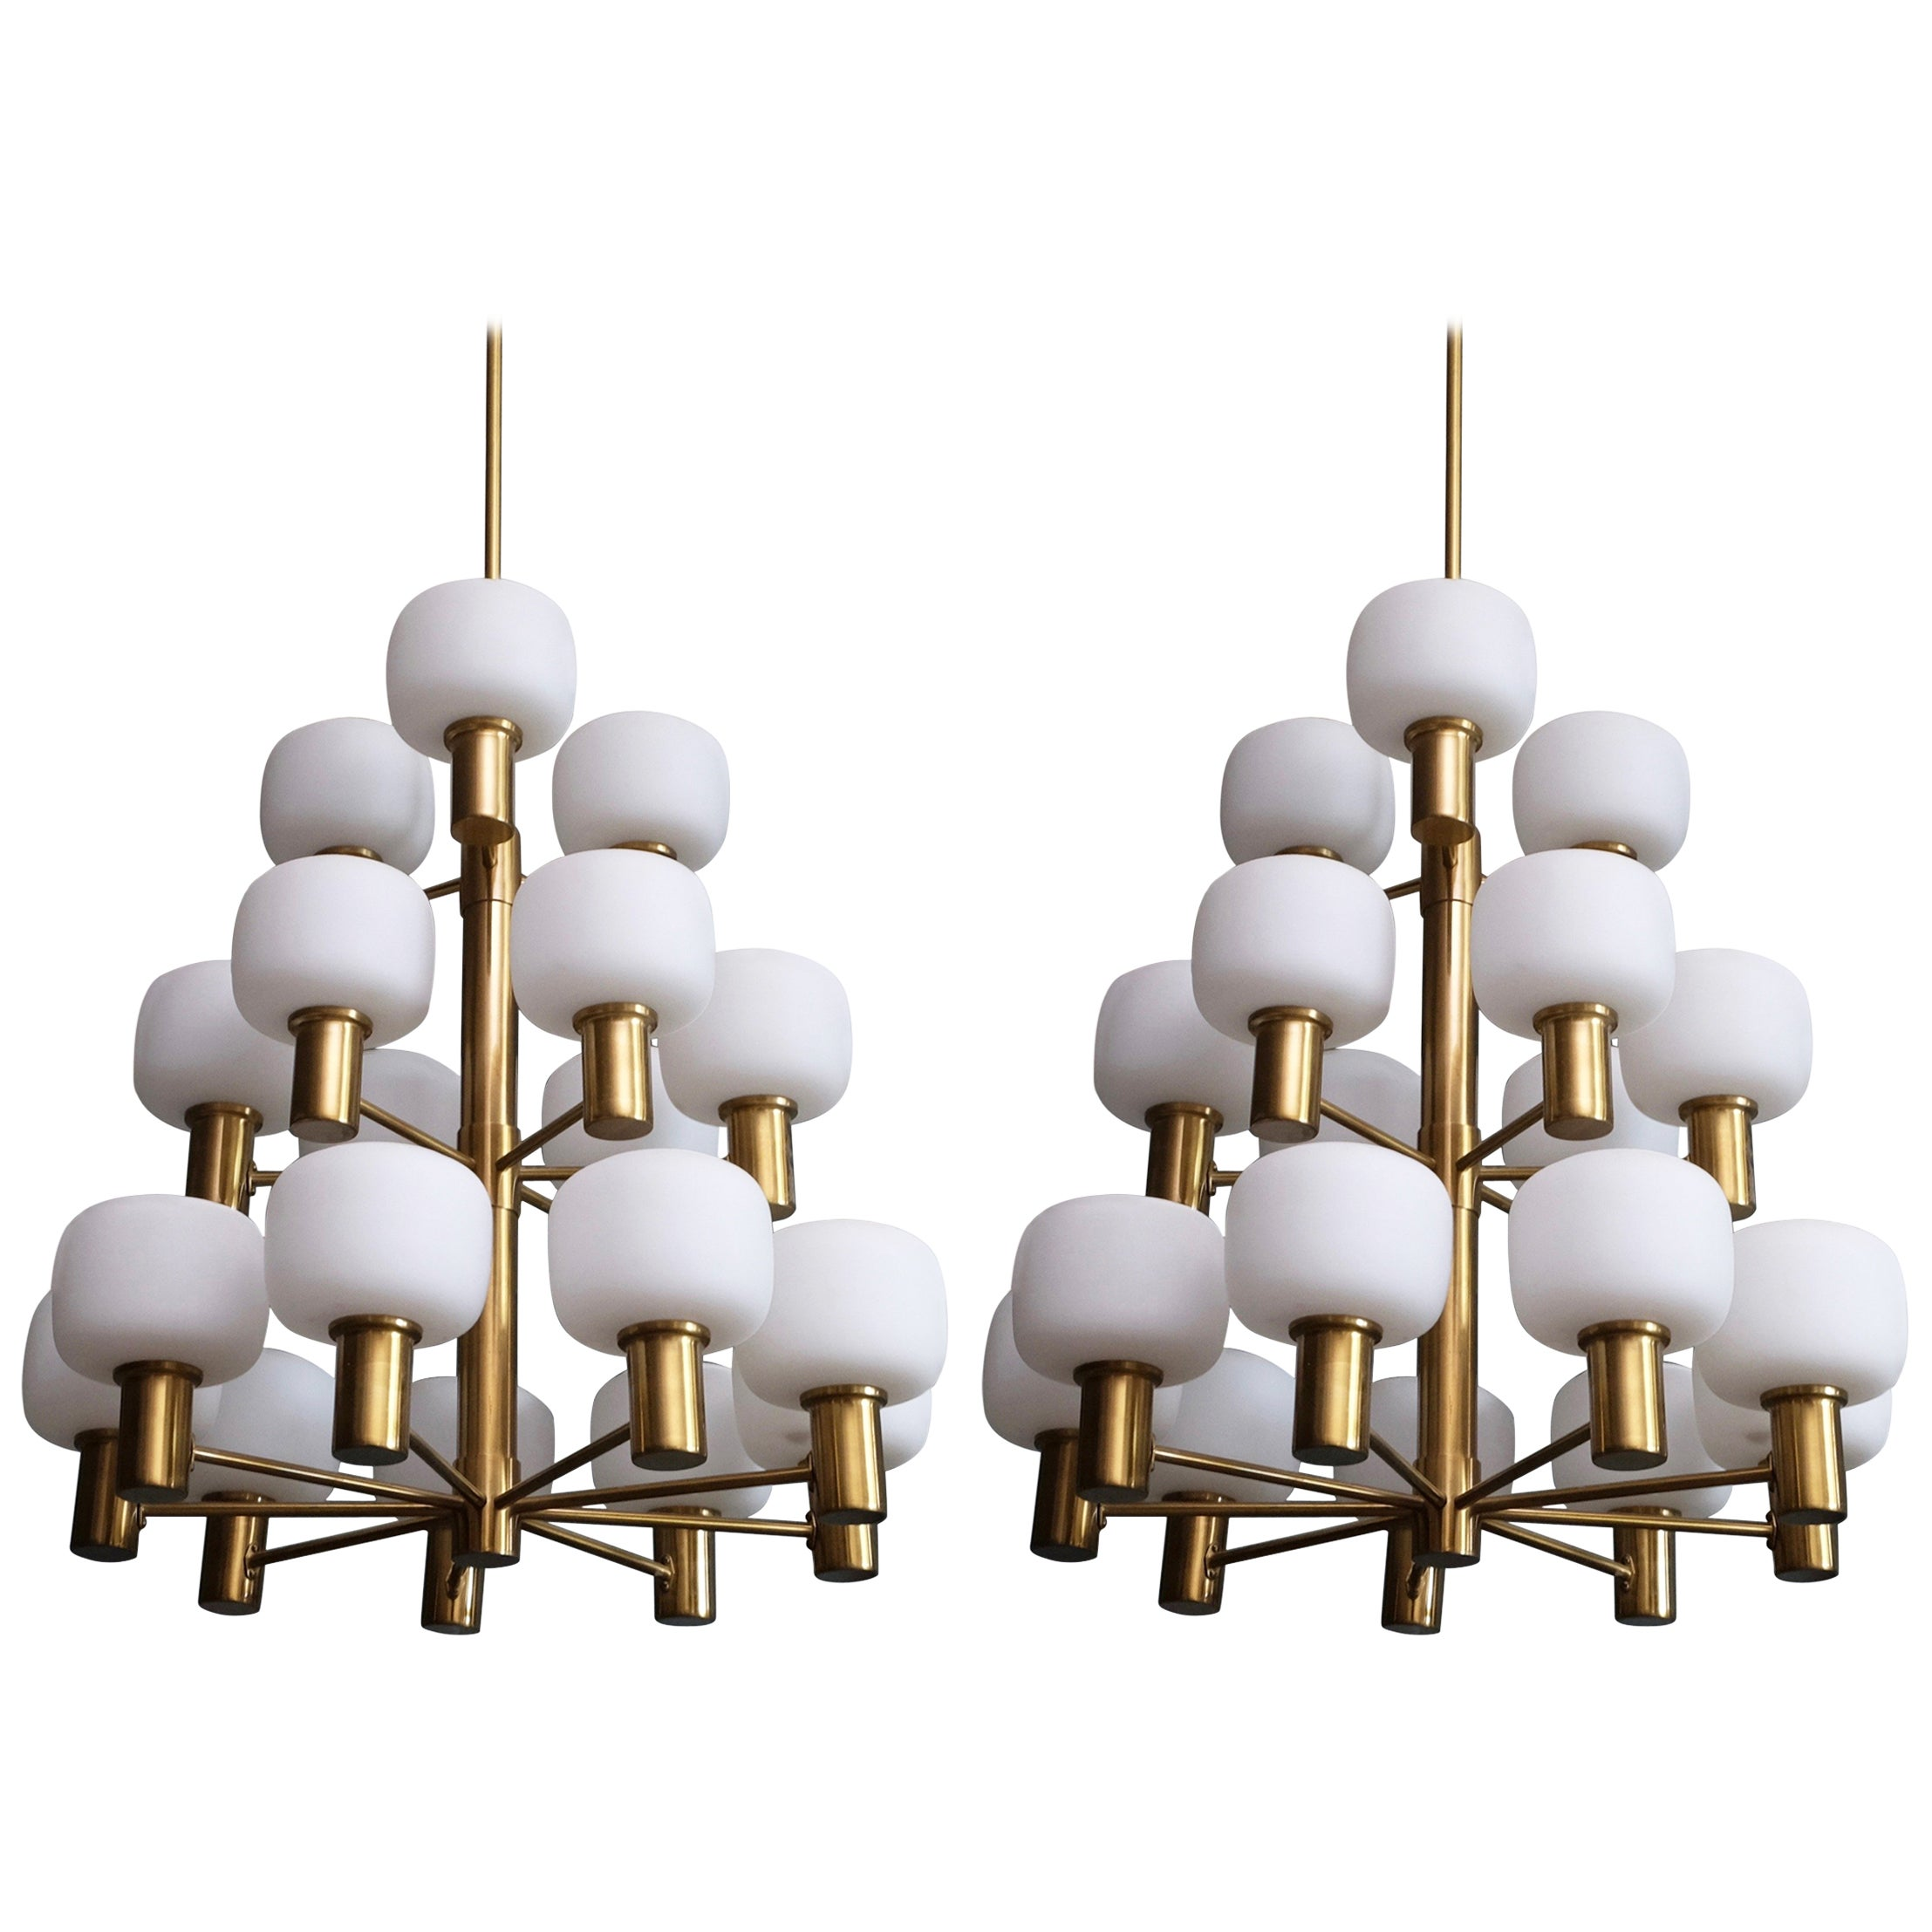 Pair of Swedish Brass Chandeliers by ASEA, 1950s